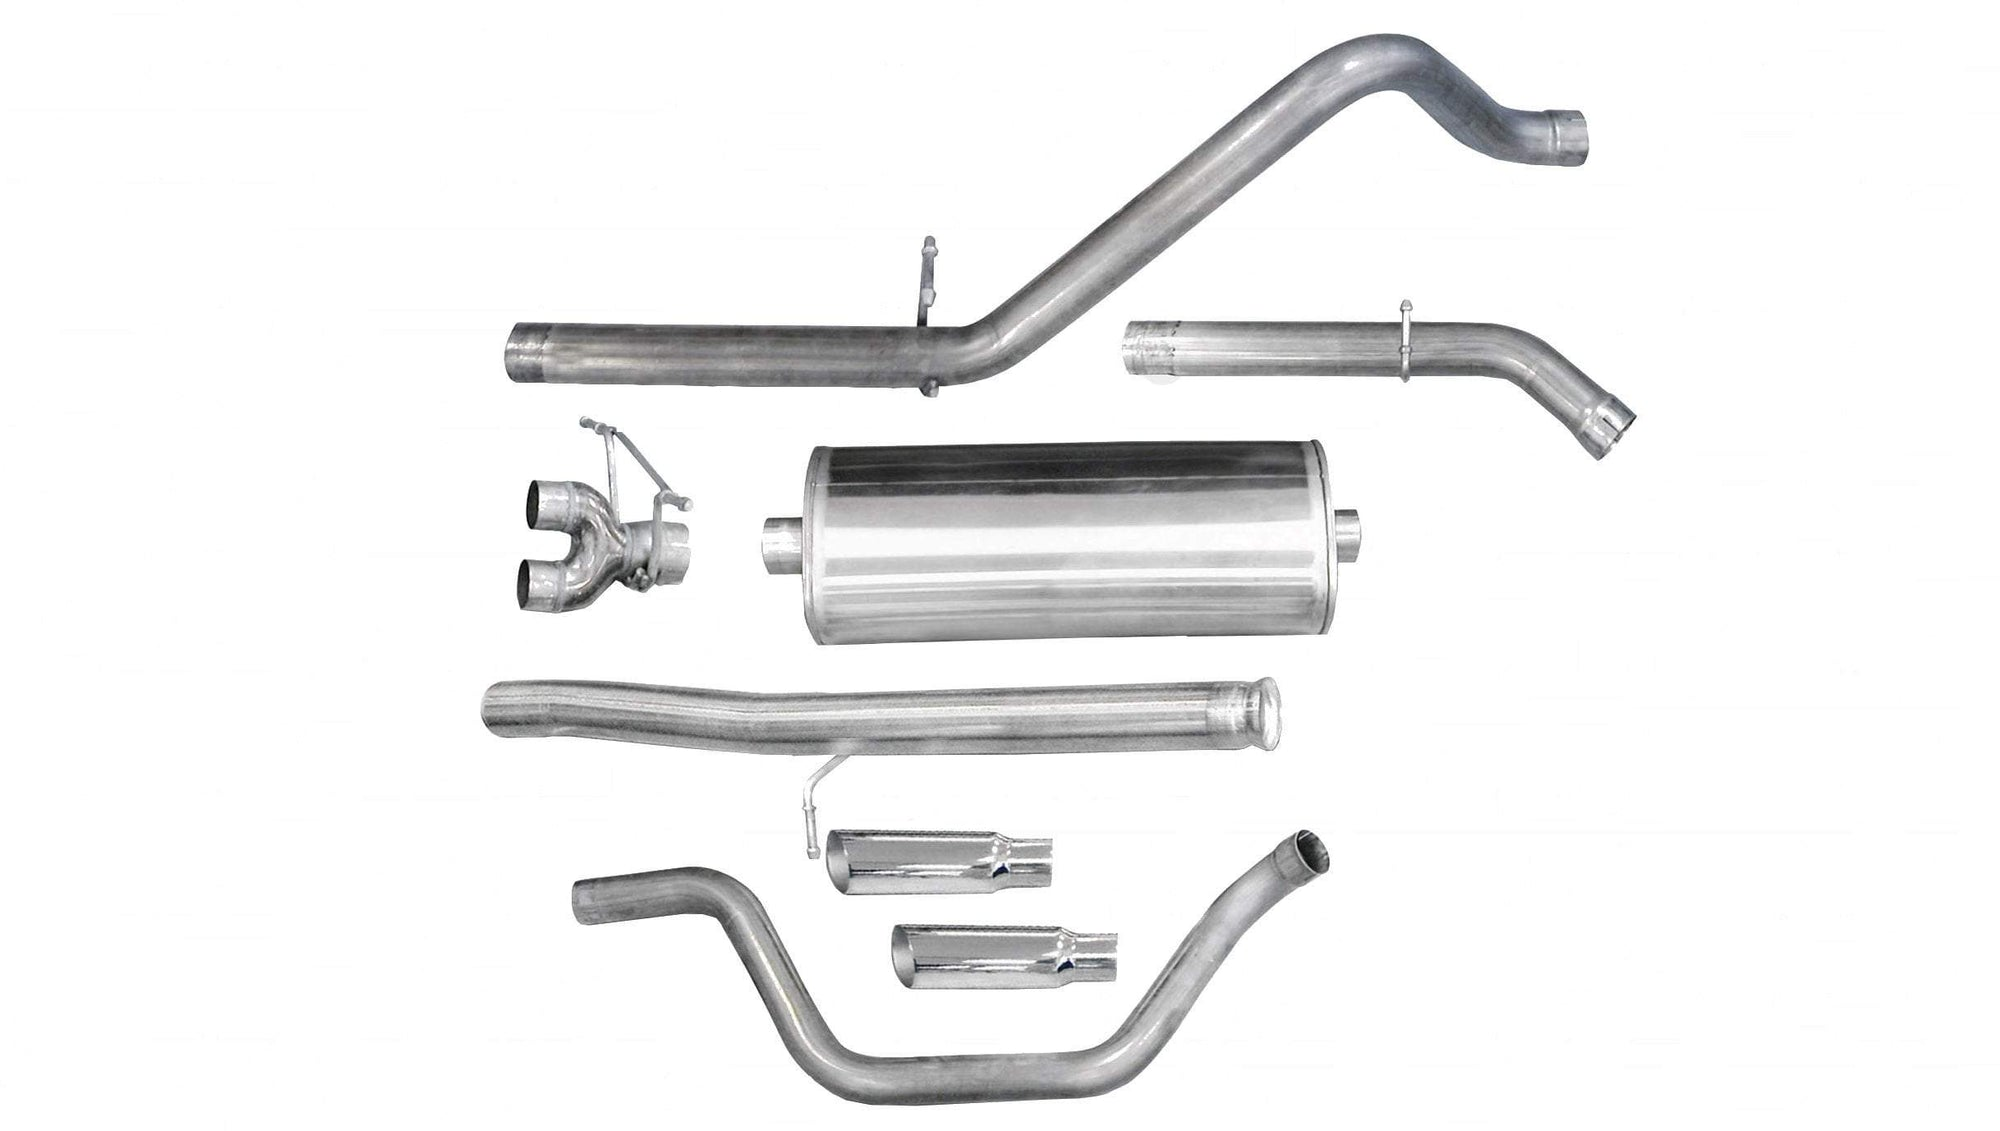 "dB Cat-Back Exhaust Polished / Sport / Dual Rear - Single 4in 2010-2013 Chevrolet Silverado, GMC Sierra, 4.8L, 5.3L, 6.0L V8, 3.0"" Dual Rear Exit Catback Exhaust System with 4.0"" Tips (24907) Sport Sound Level"